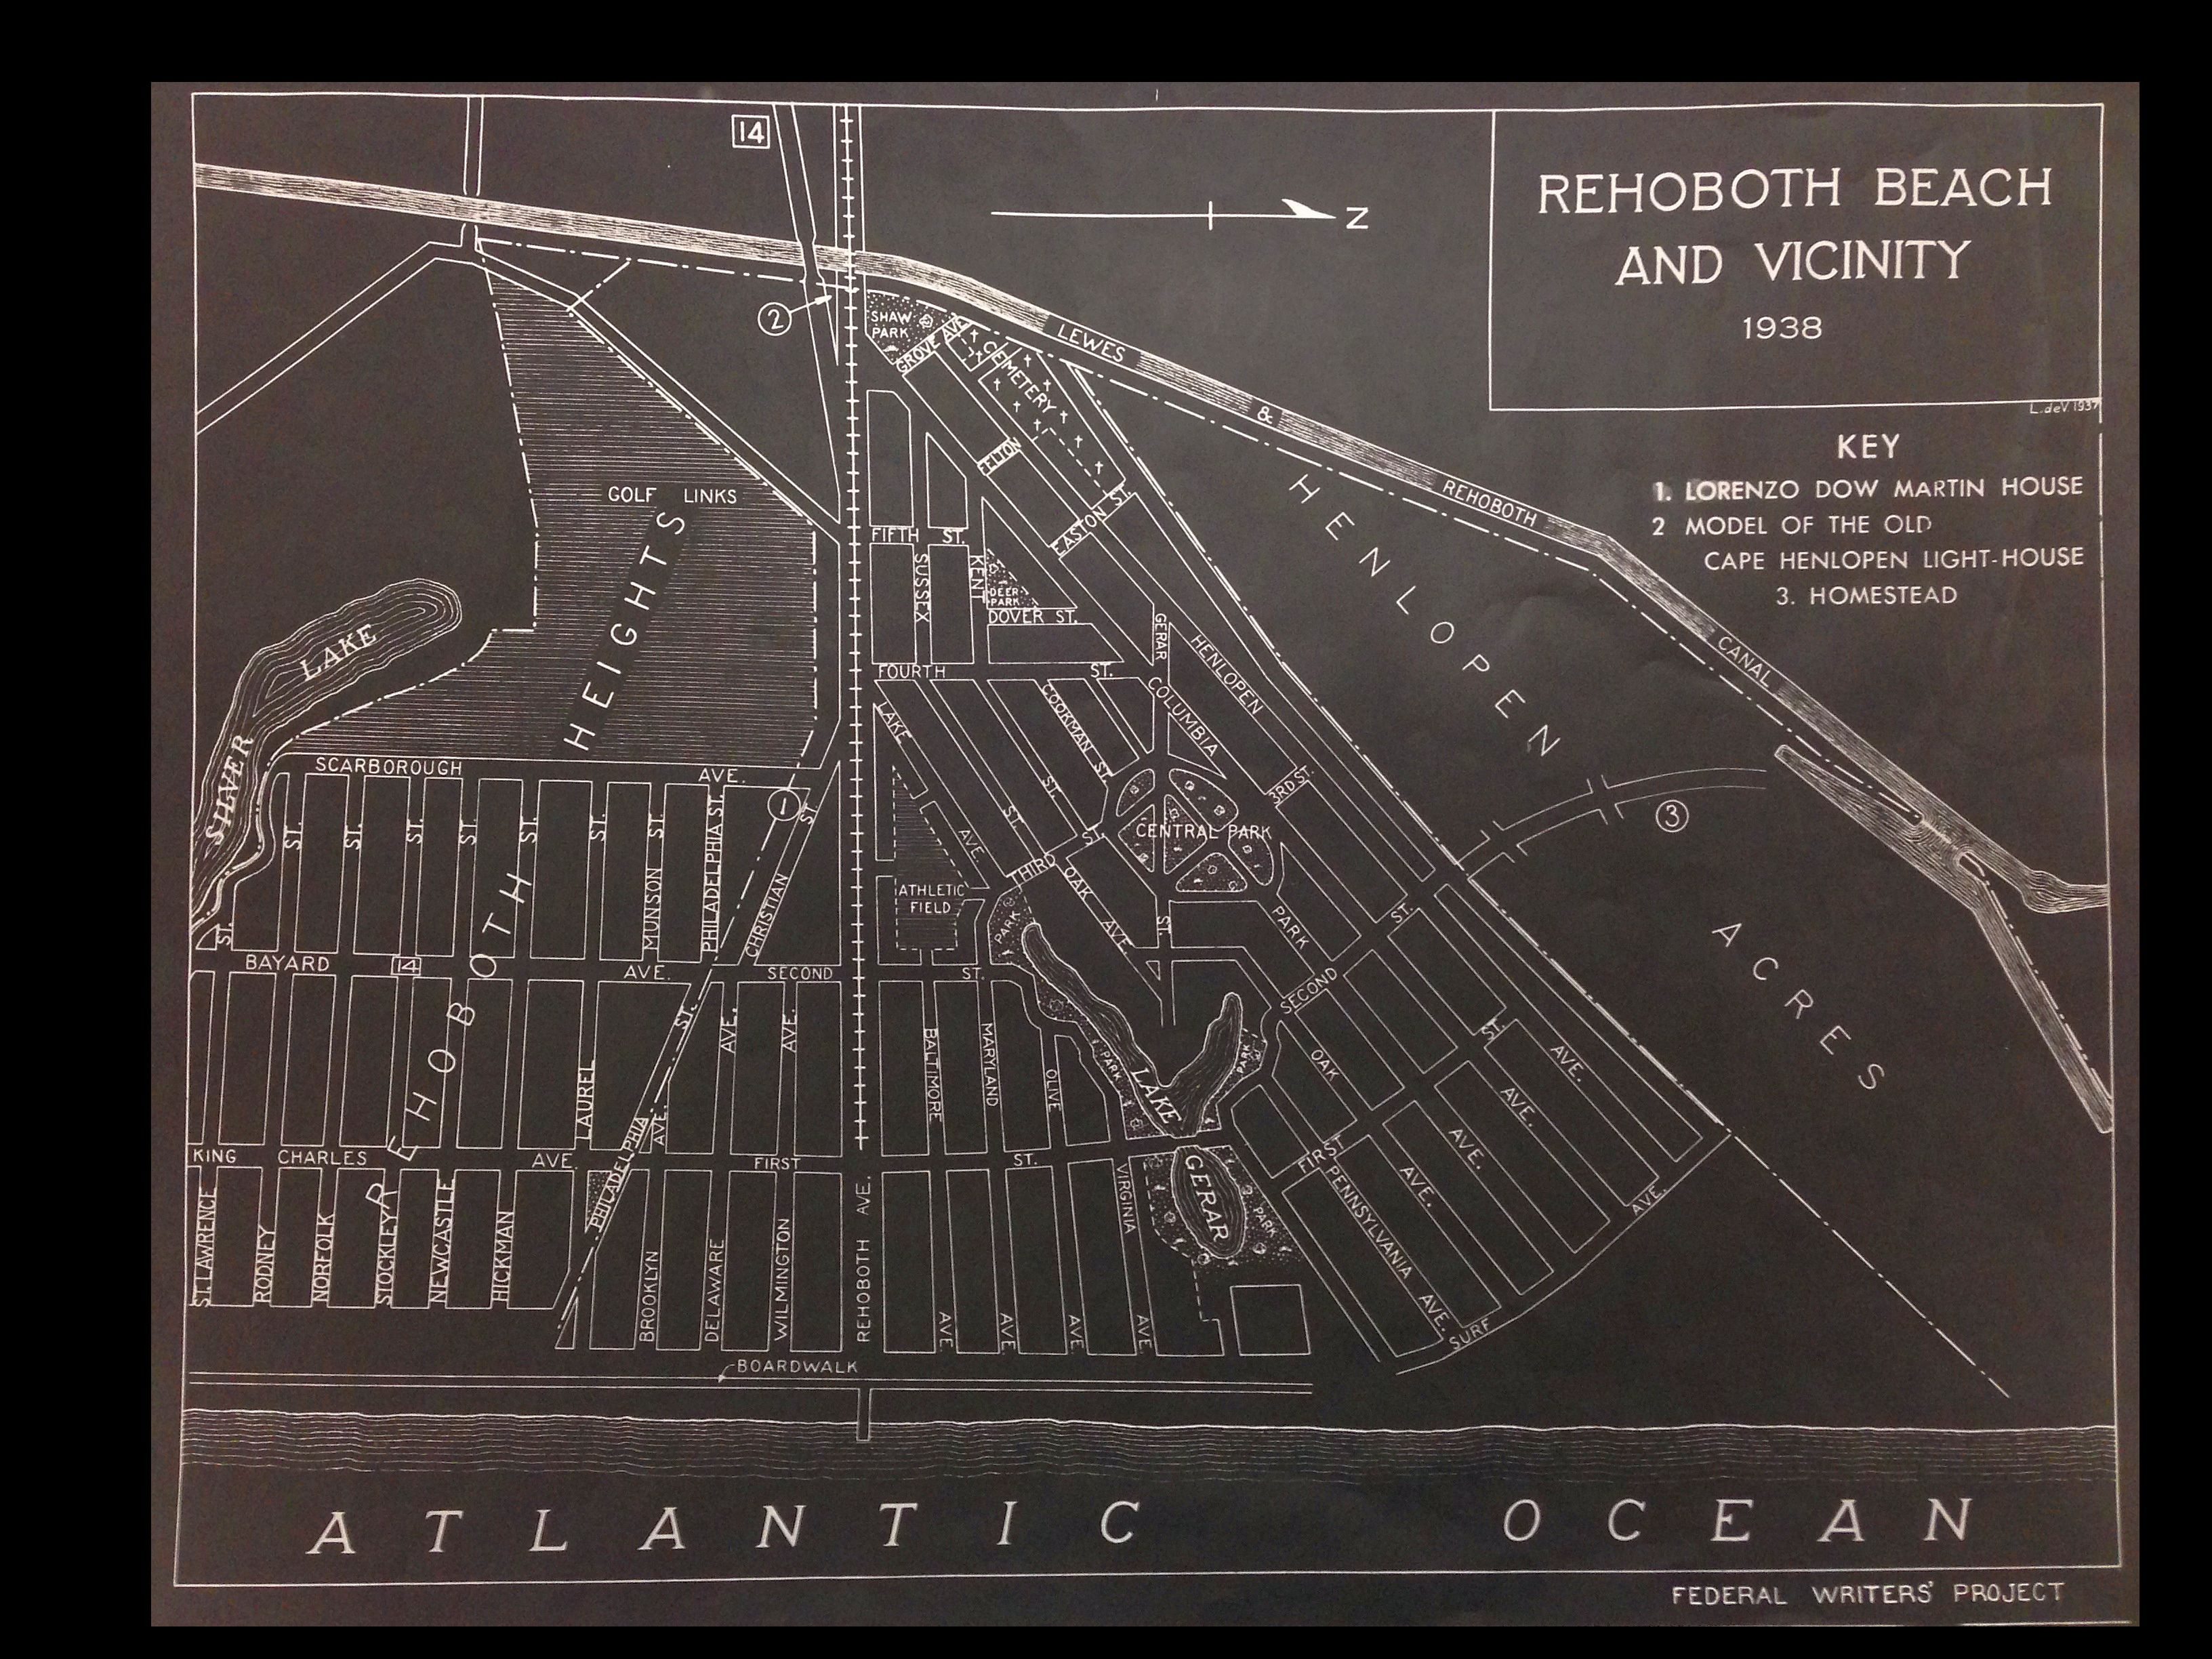 1938 Rehoboth Beach Delaware Map 1325 203 From Cities And Towns Collections At